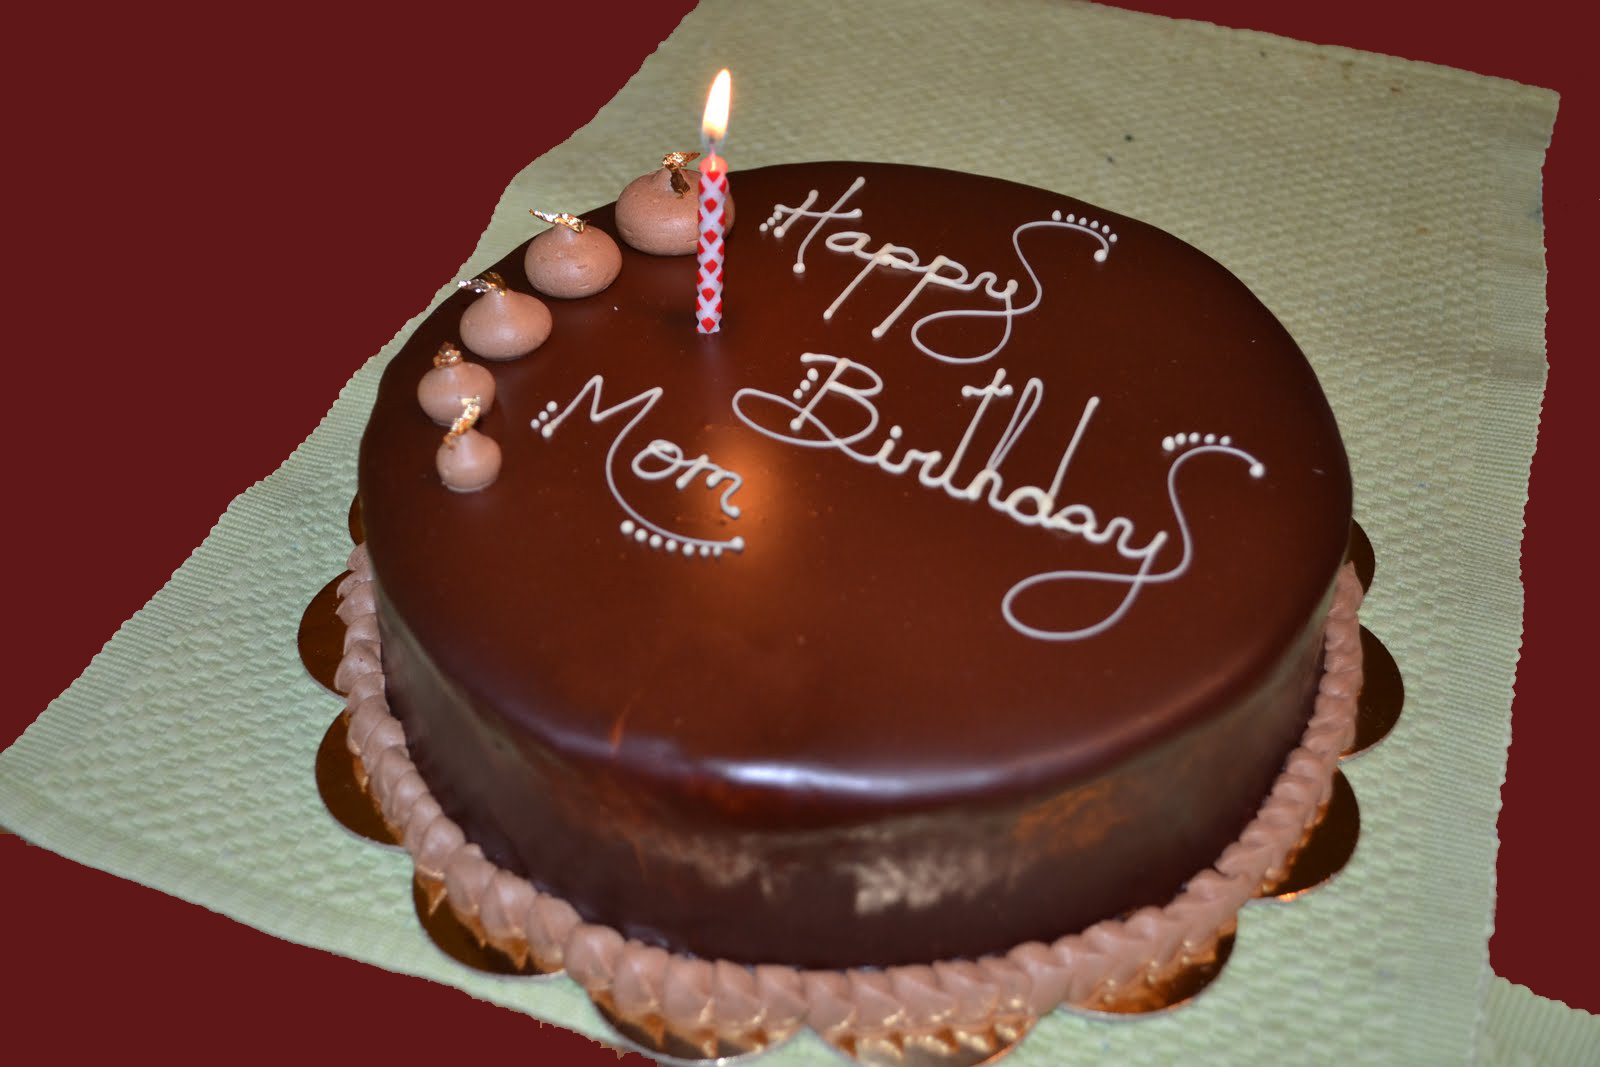 Birthday Cake Image Collection For Free Download 1600x1067